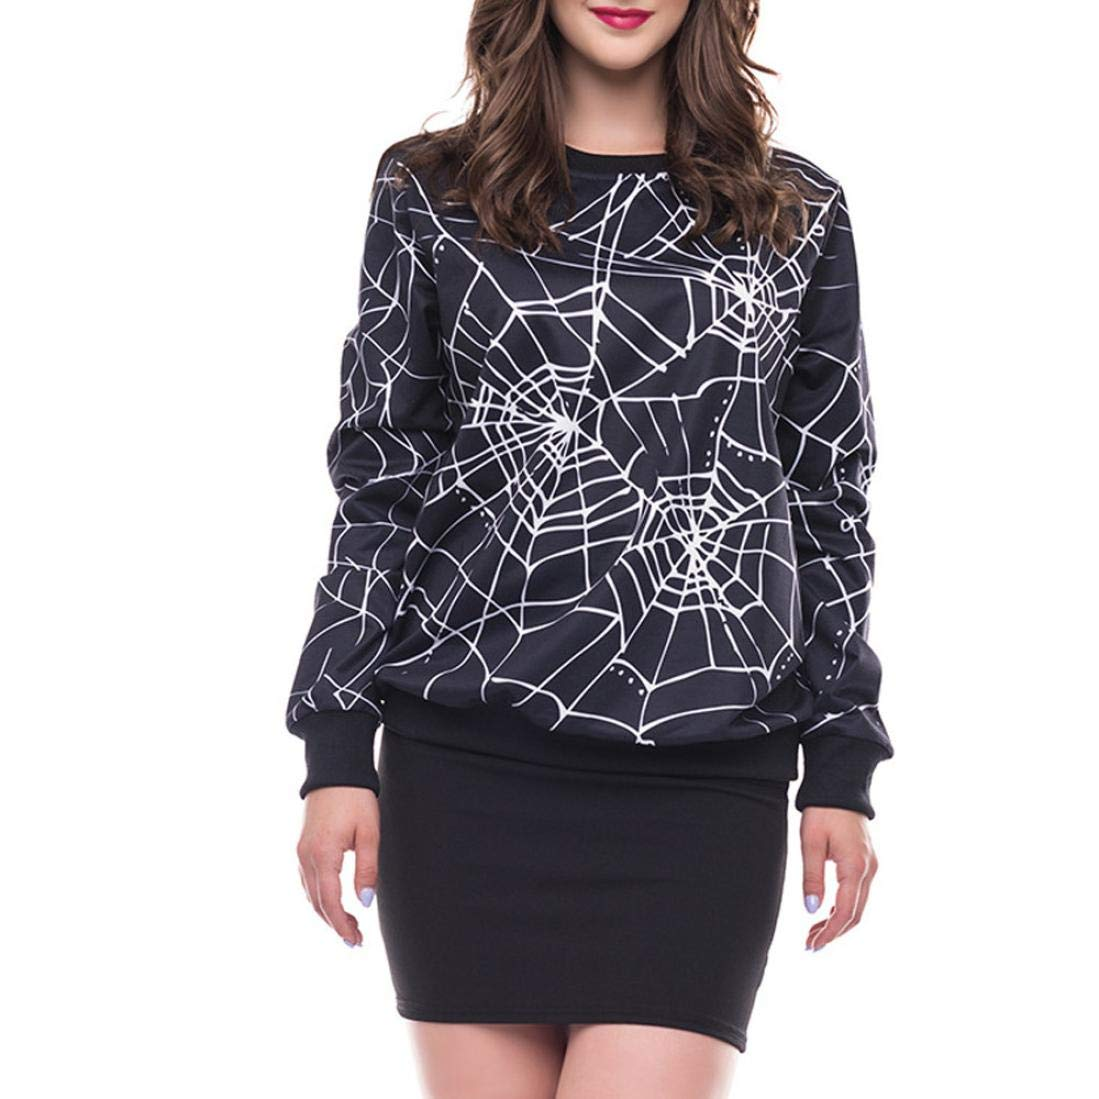 Nuoinet Clearance Women Halloween Spider Web 3D Print Sweatshirt Pullover Pocket Long Sleeve Casual Tops (M, Black) by Nuoinet Clearance (Image #1)